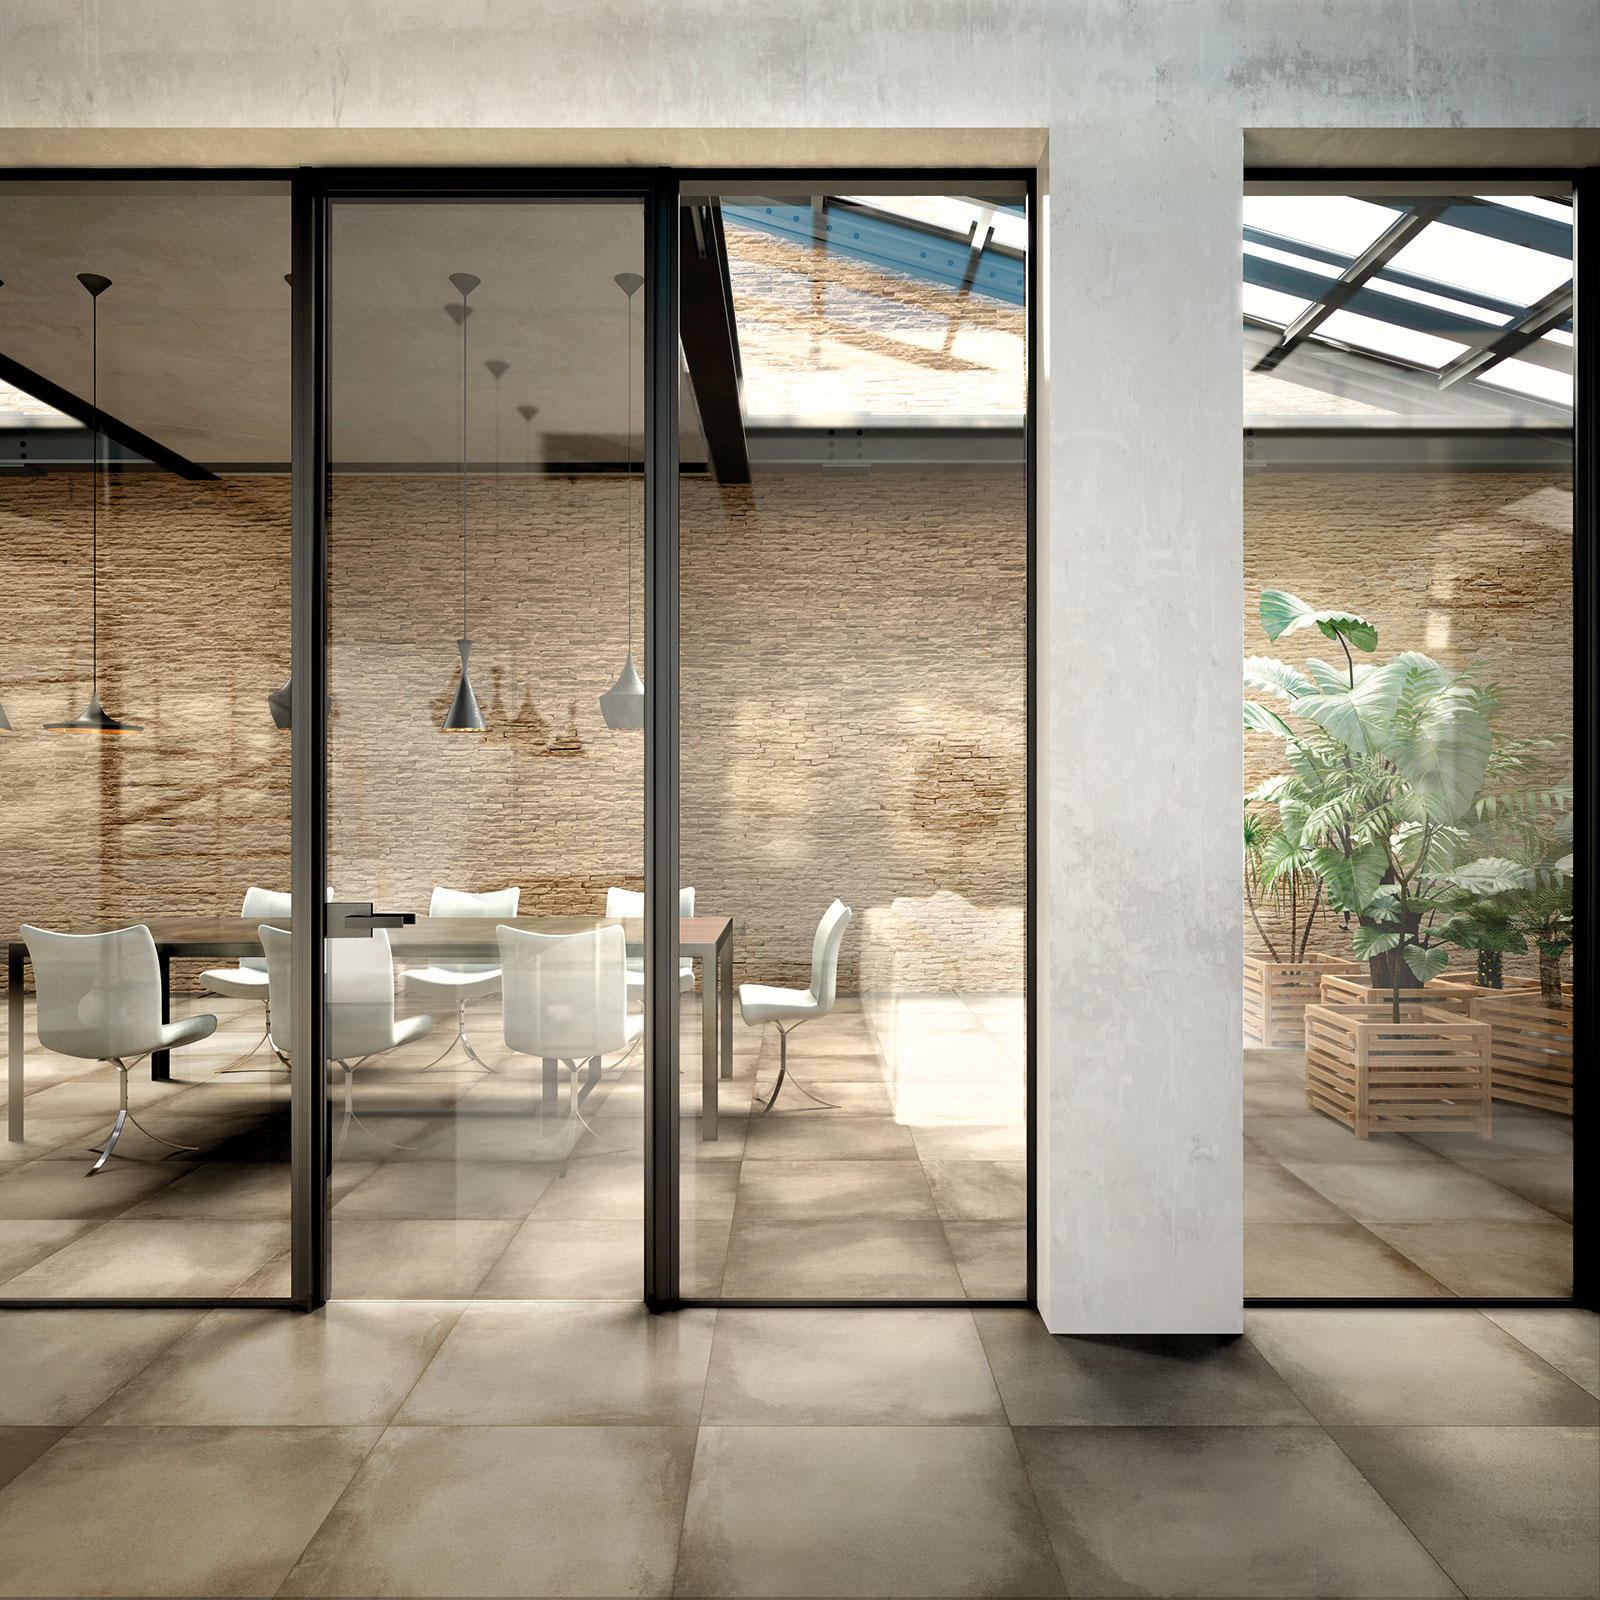 Water Clear Glass, Inside Sliding System Combined With Fixed Glass Walls